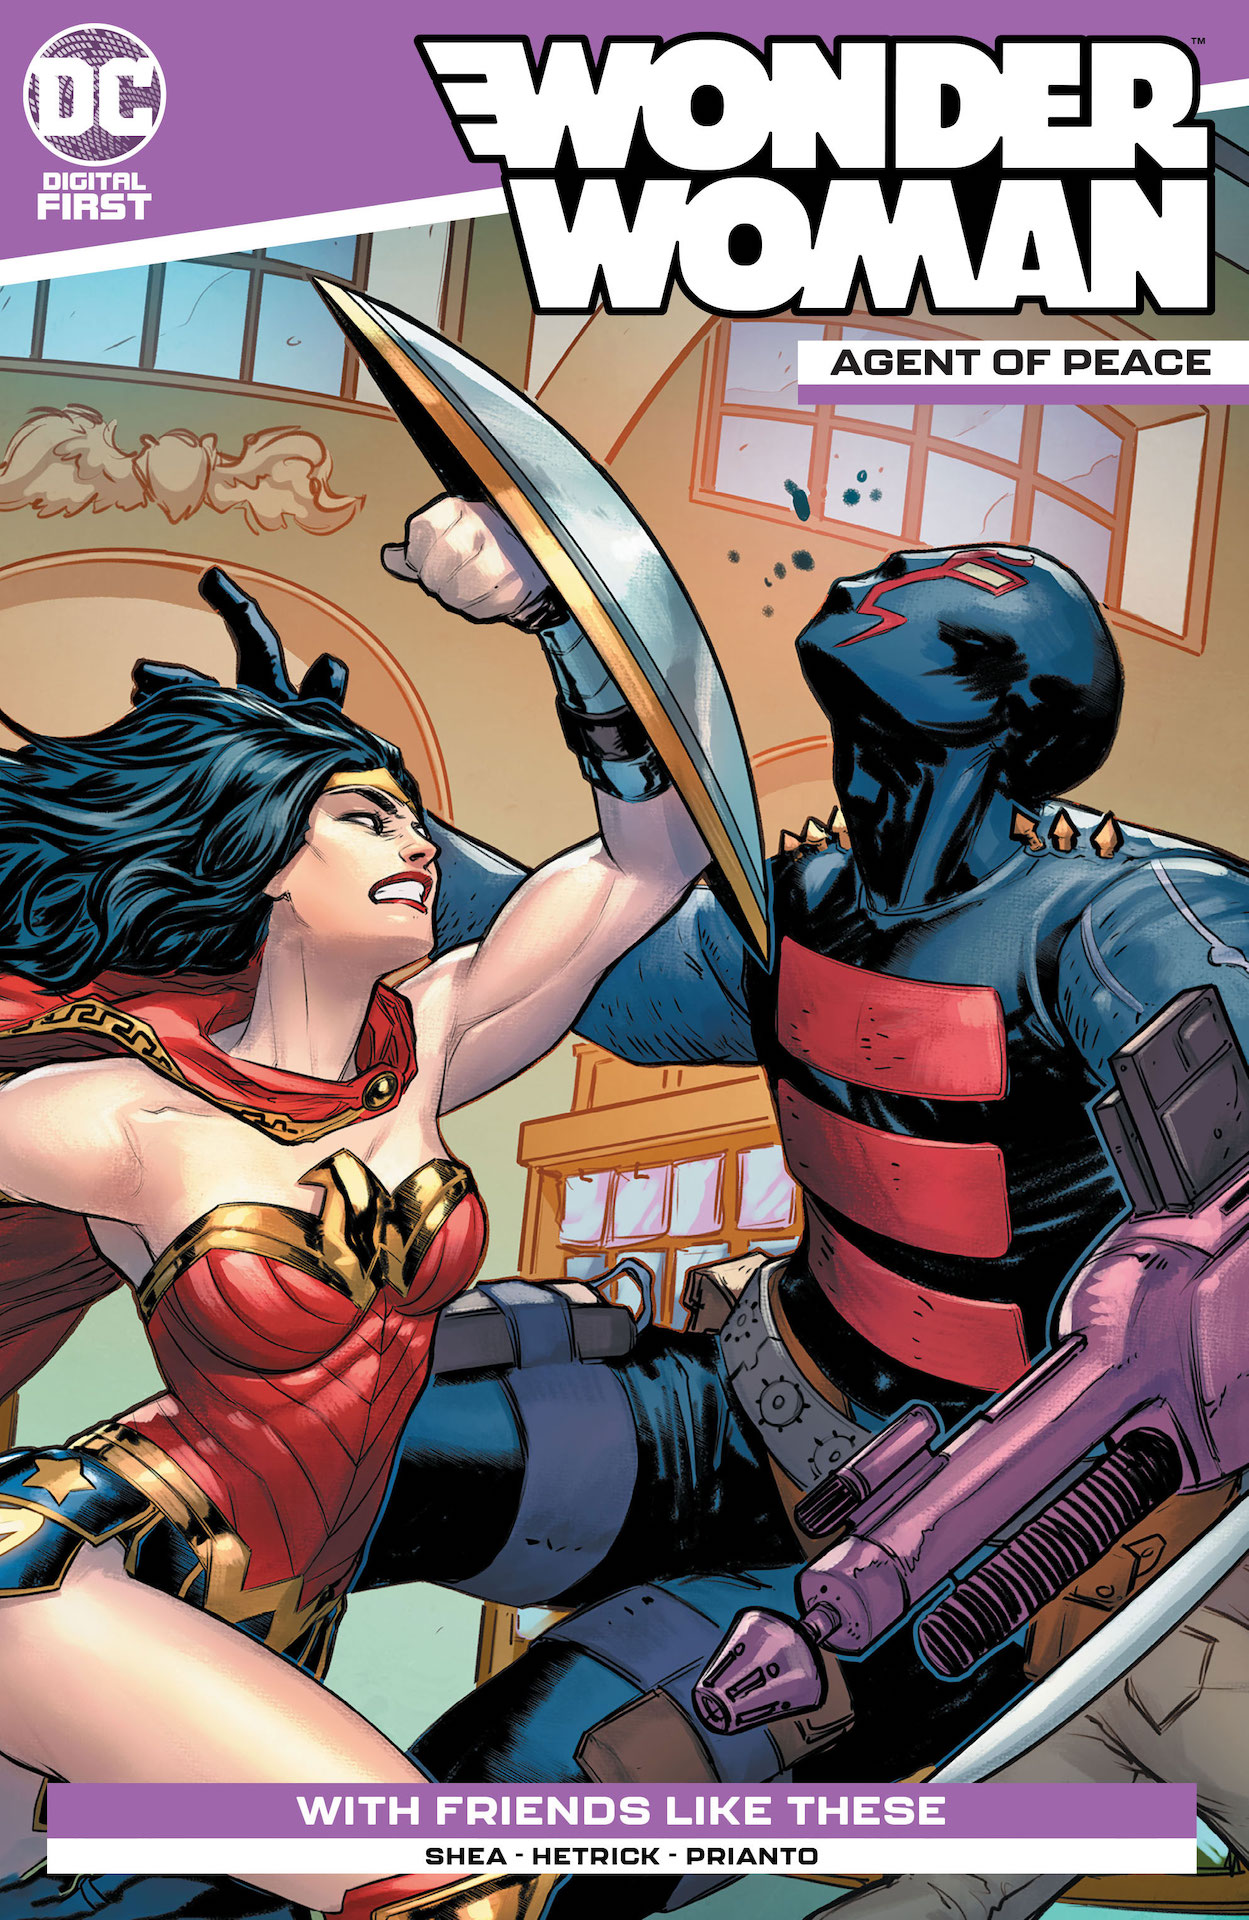 DC Preview: Wonder Woman: Agent of Peace #7